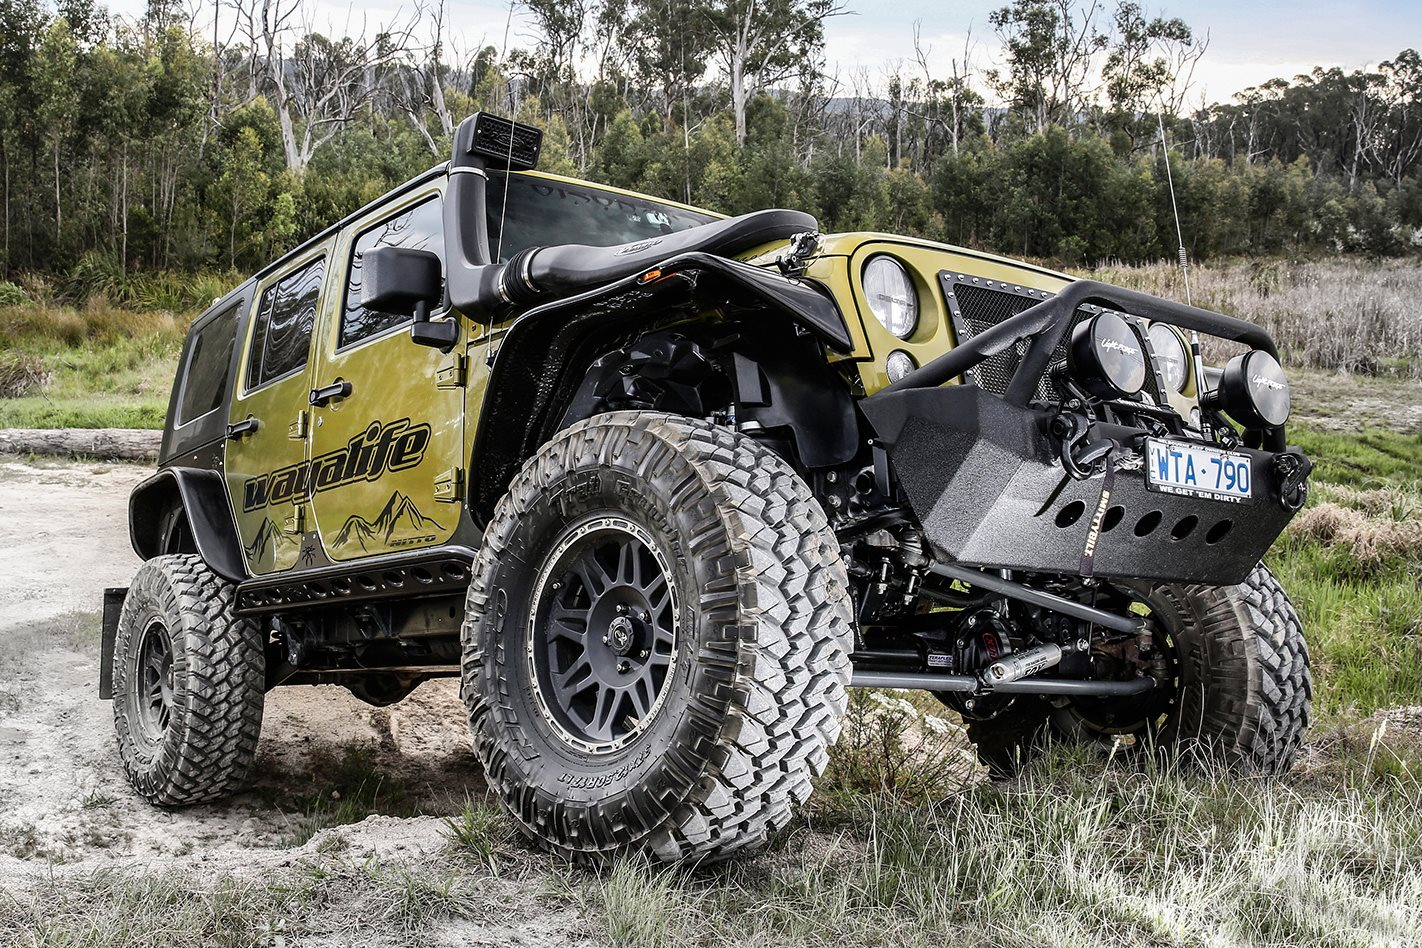 Jeep Models 2015 >> Custom 4x4 | Jeep Wrangler Unlimited